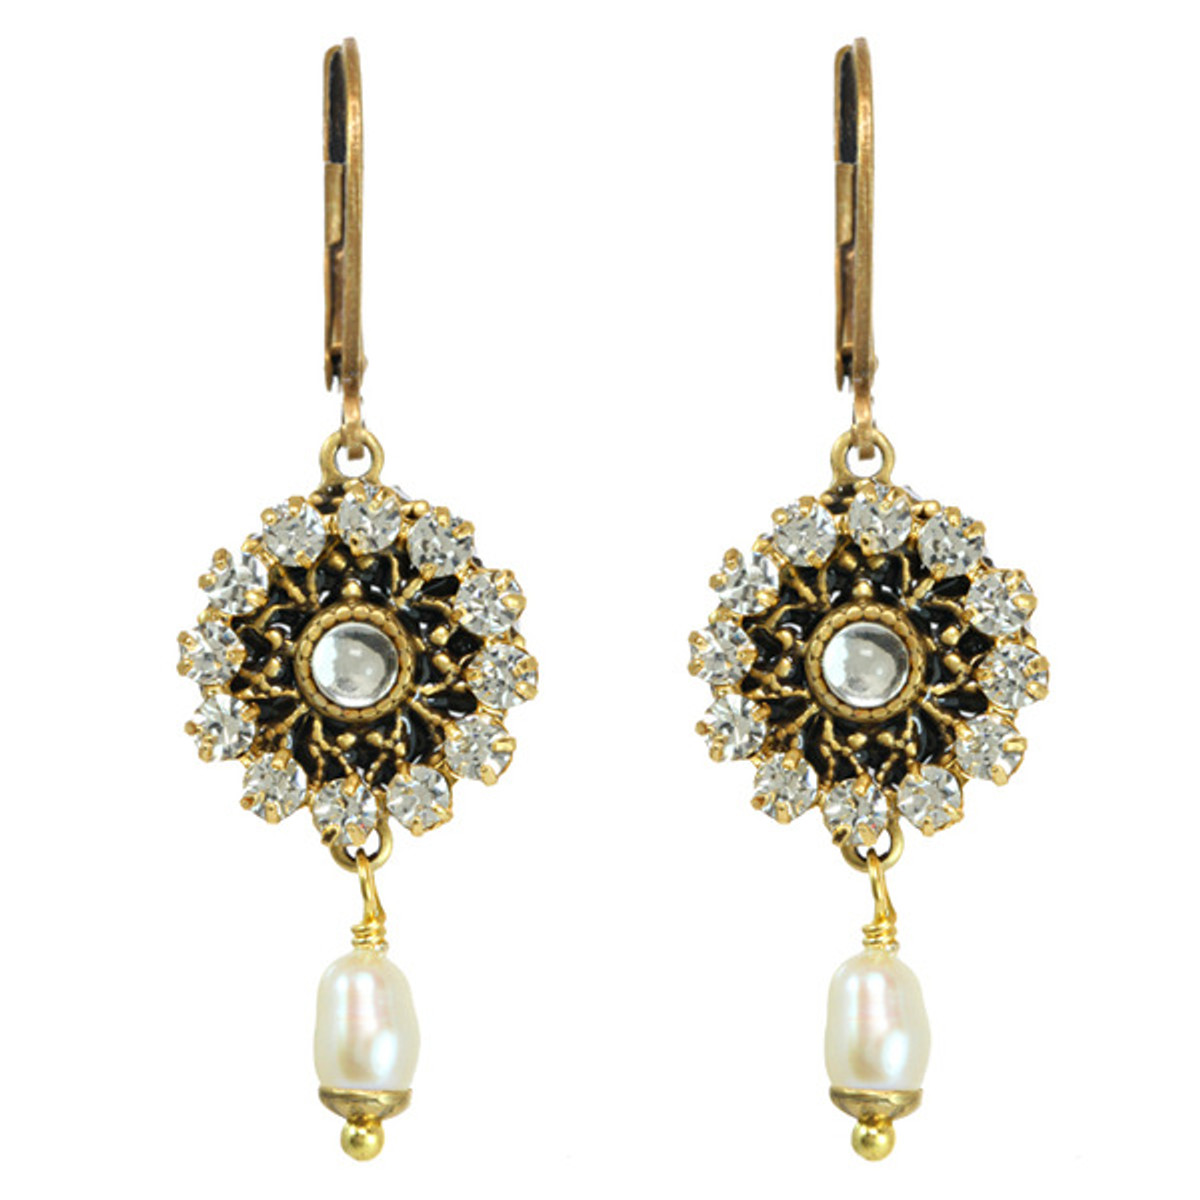 Gorgeous Deco Earrings By Michal Golan Jewelry